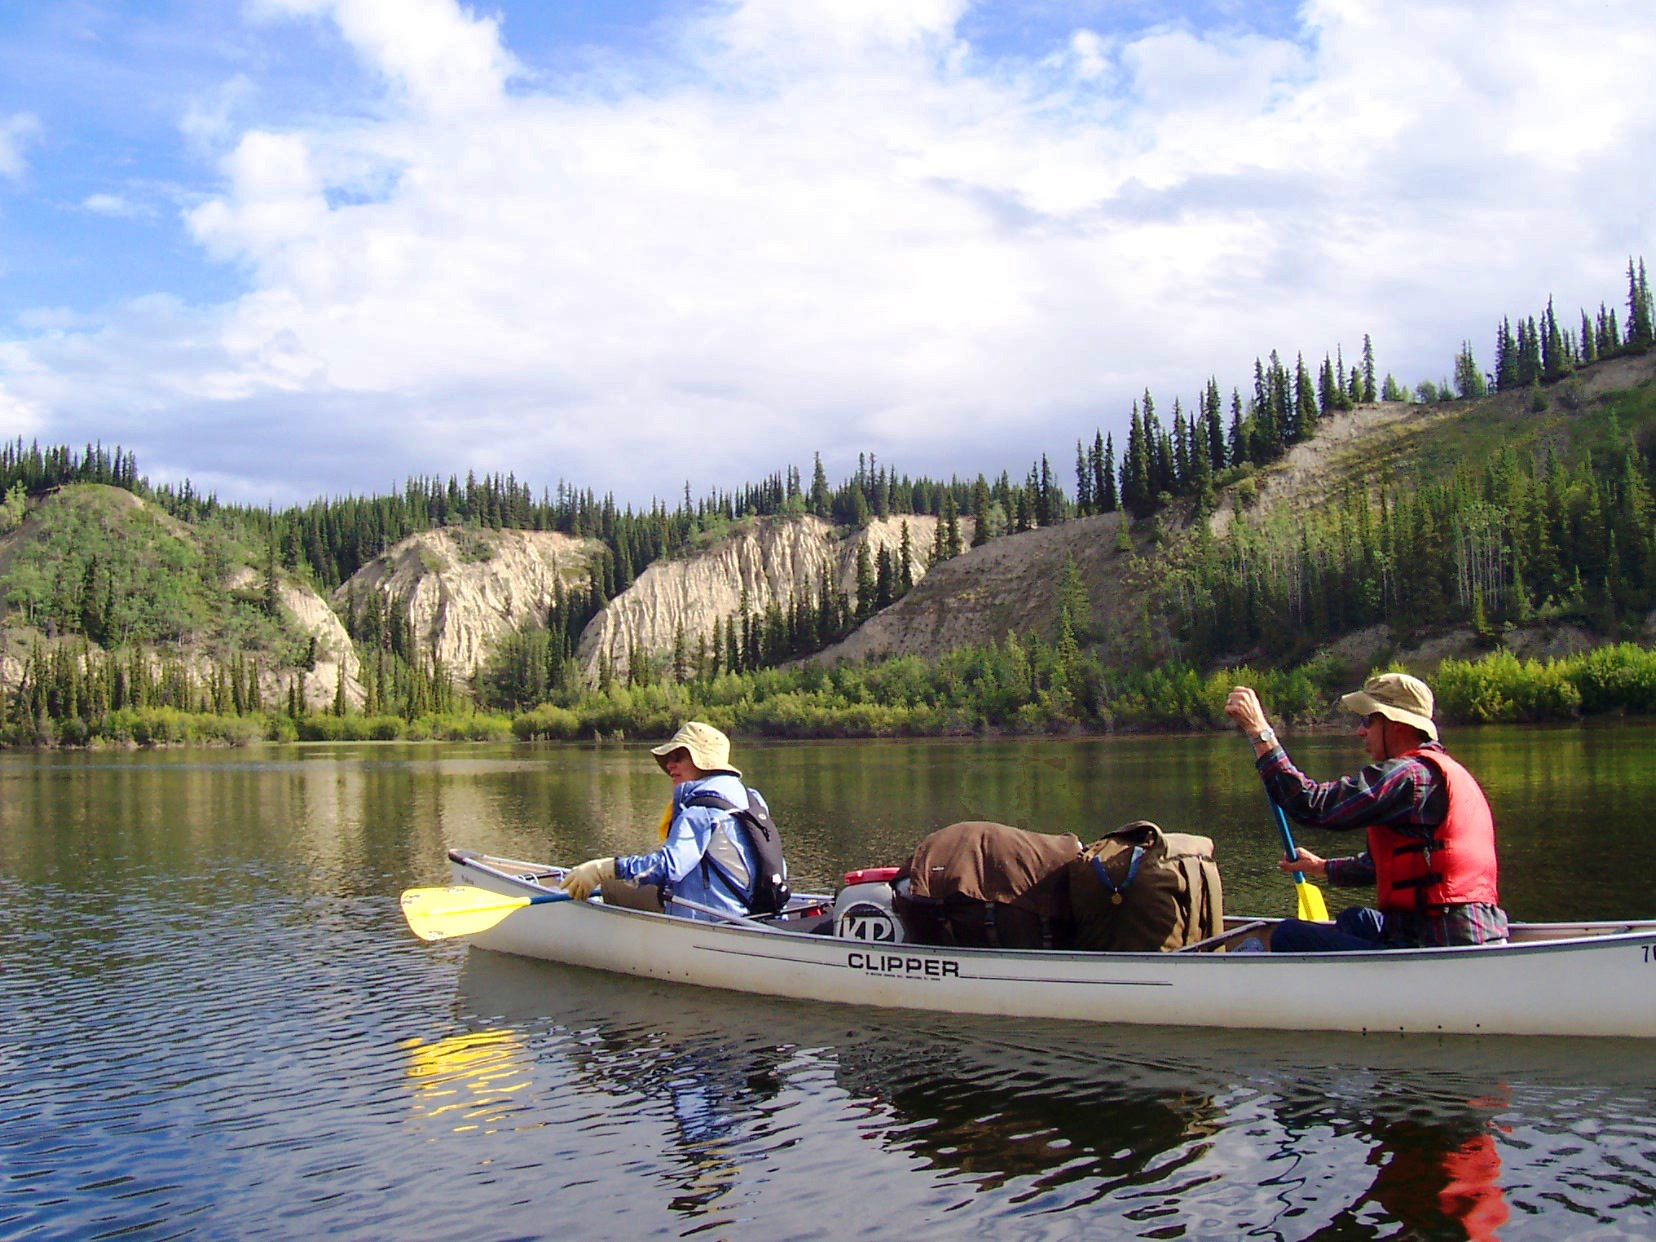 Two participants paddle a white Clipper canoe on Yukon's Big Salmon River.